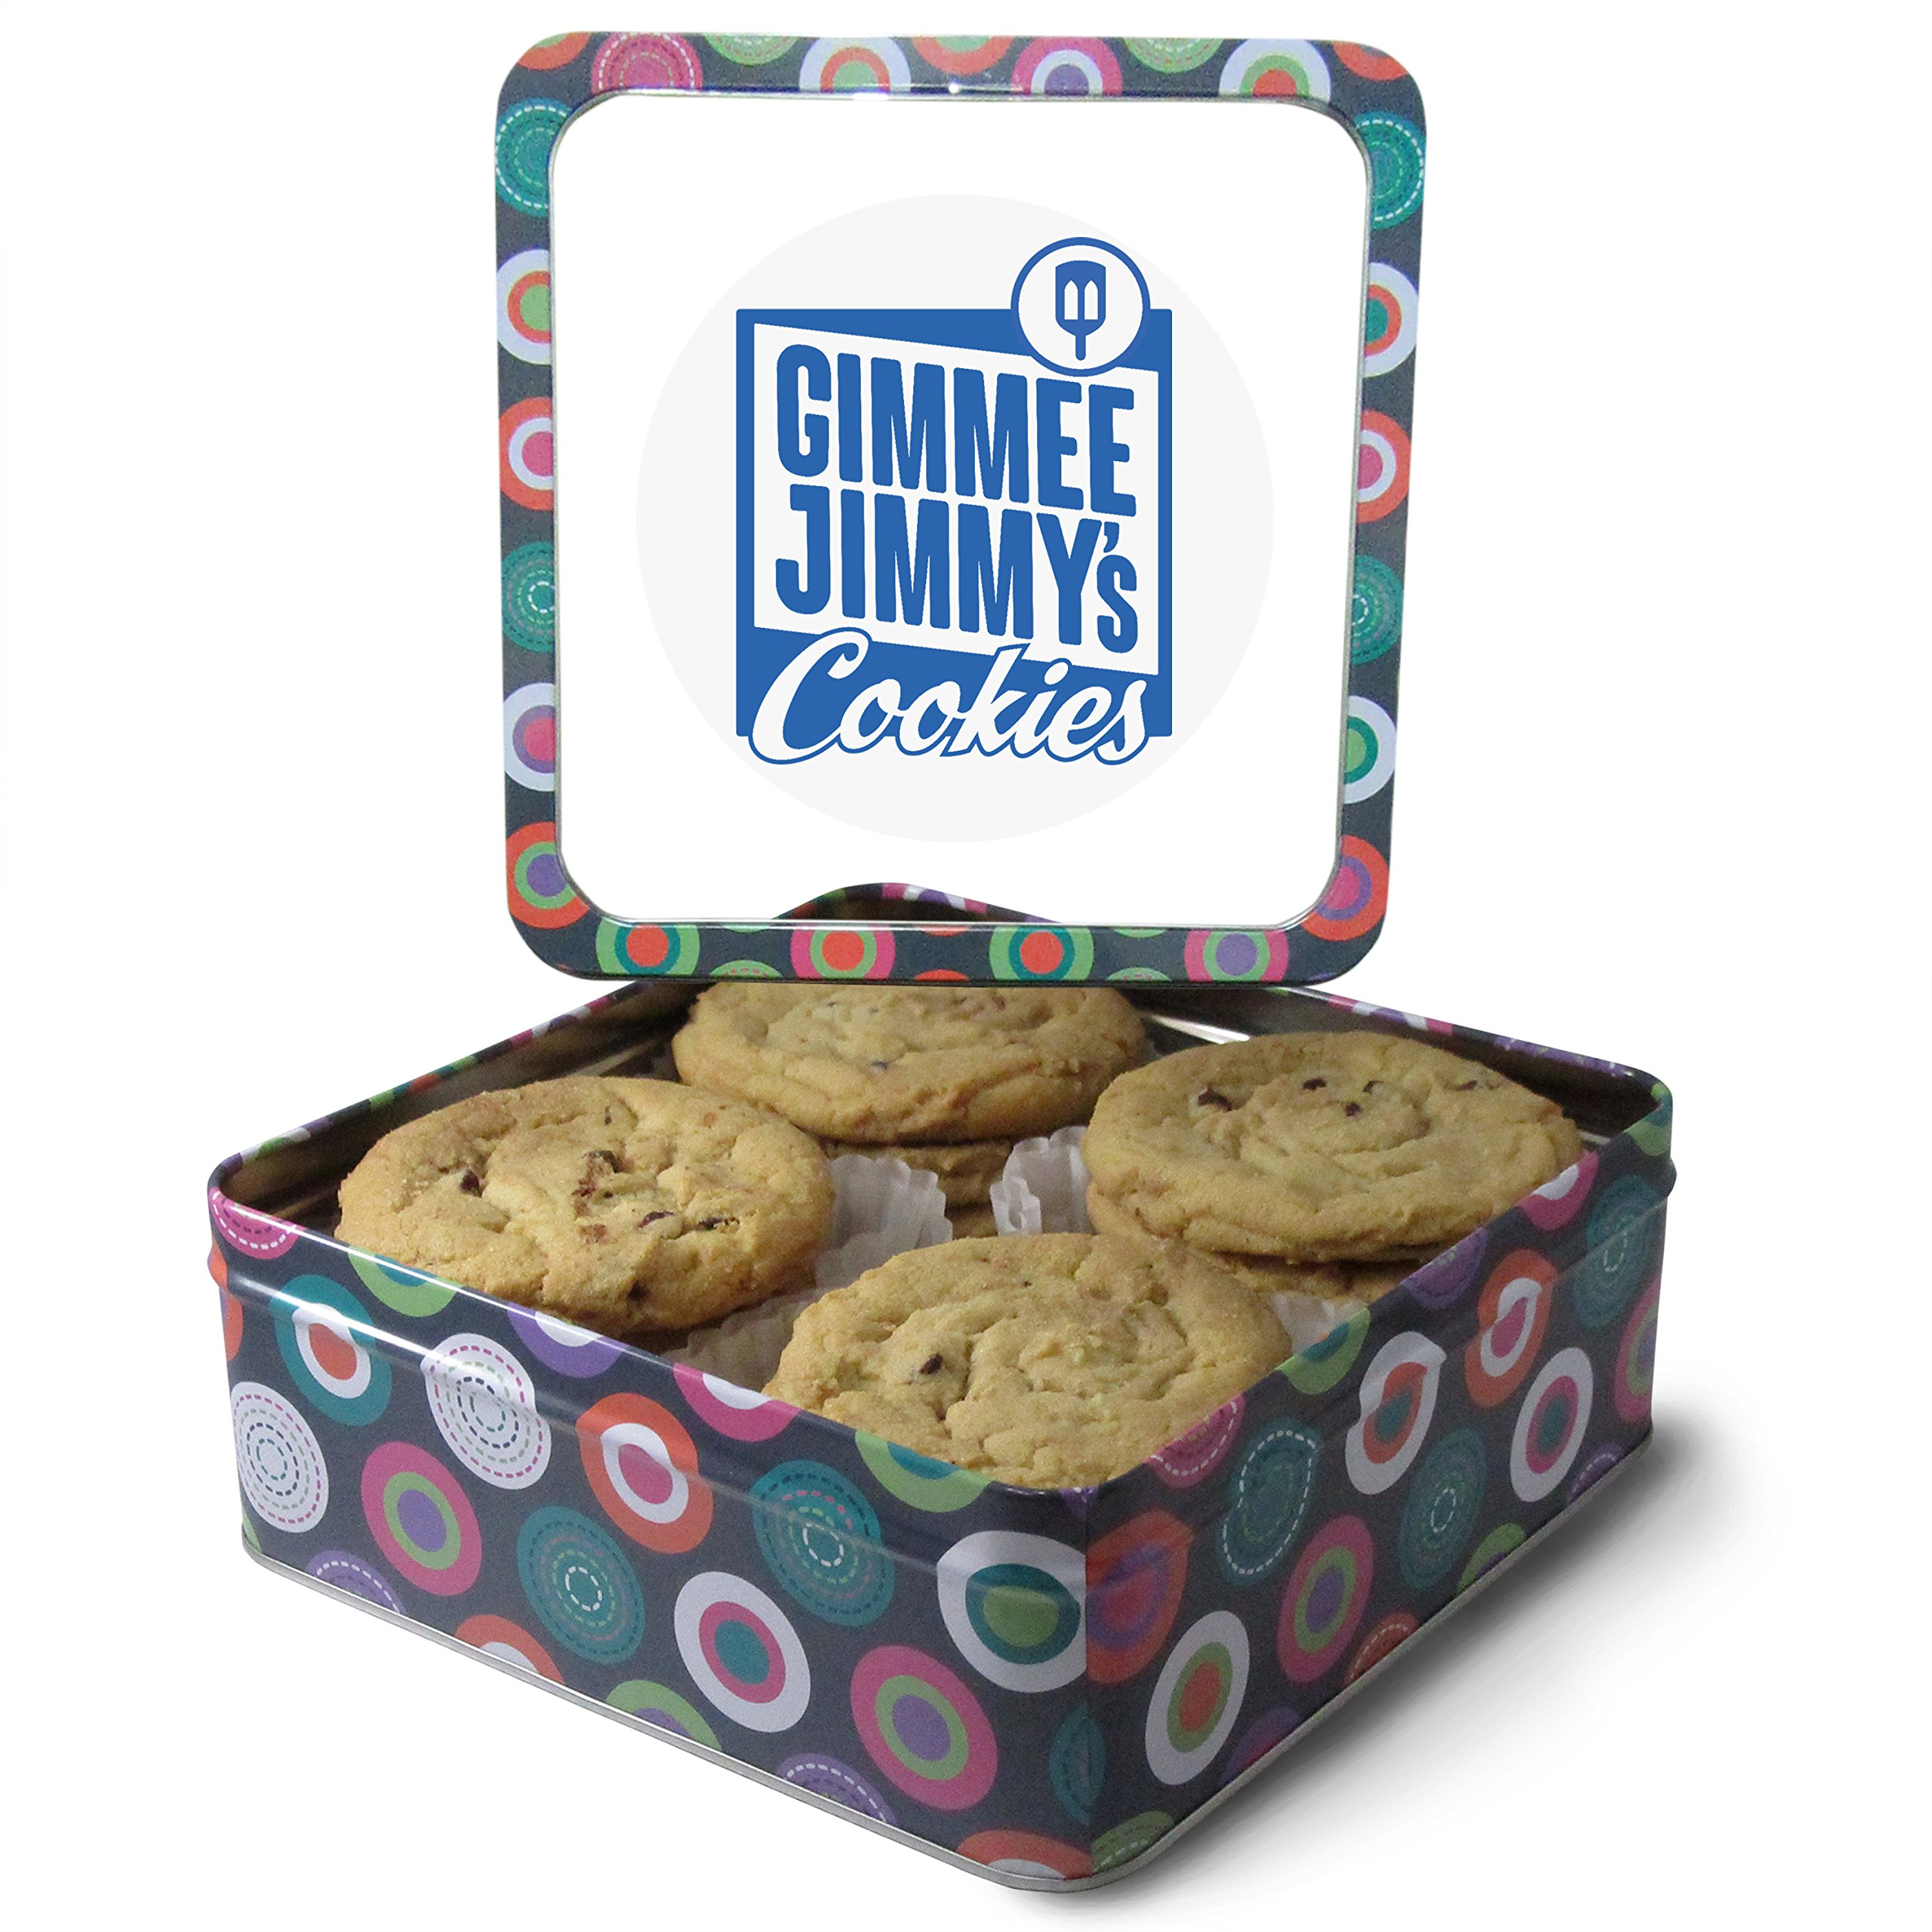 Fresh Baked Chocolate Chip Cookie Tins, Comes in Multiple Sizes | Gimmee Jimmy's Authentic Cookies (1 Pound) by Gimmee Jimmy's Cookies (Image #1)